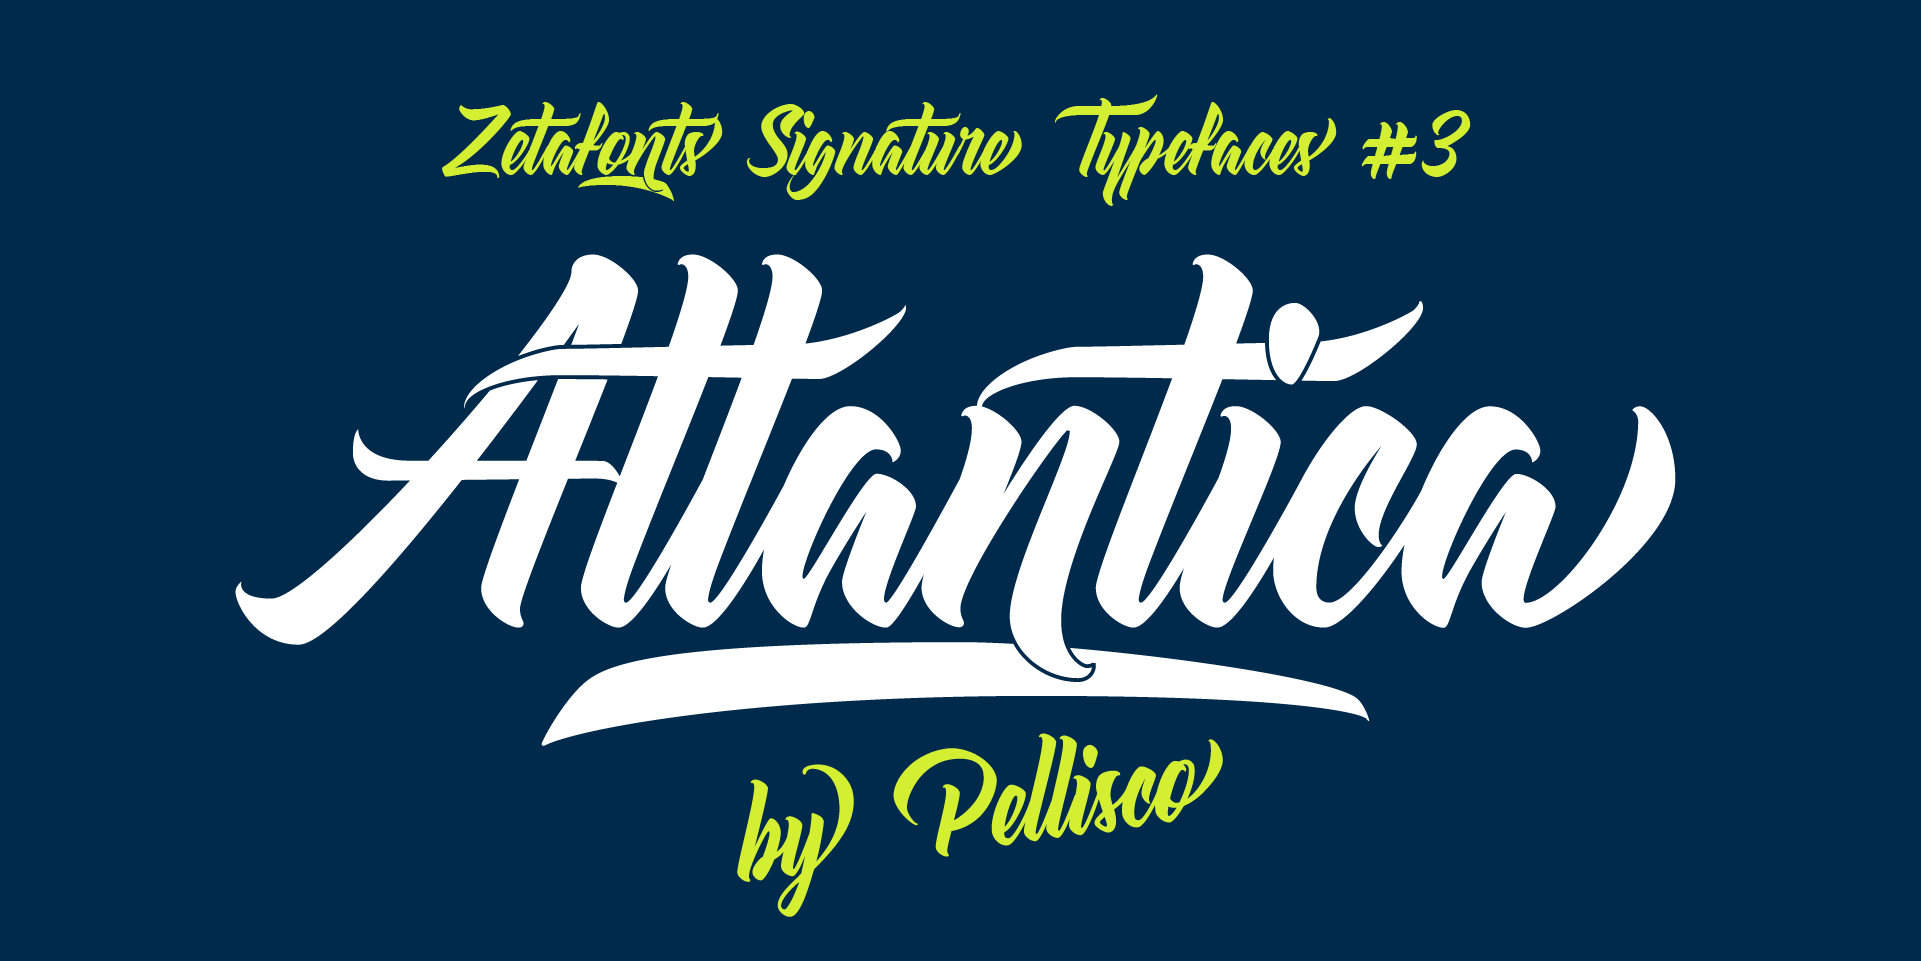 Atlantica Typeface by Zetafonts